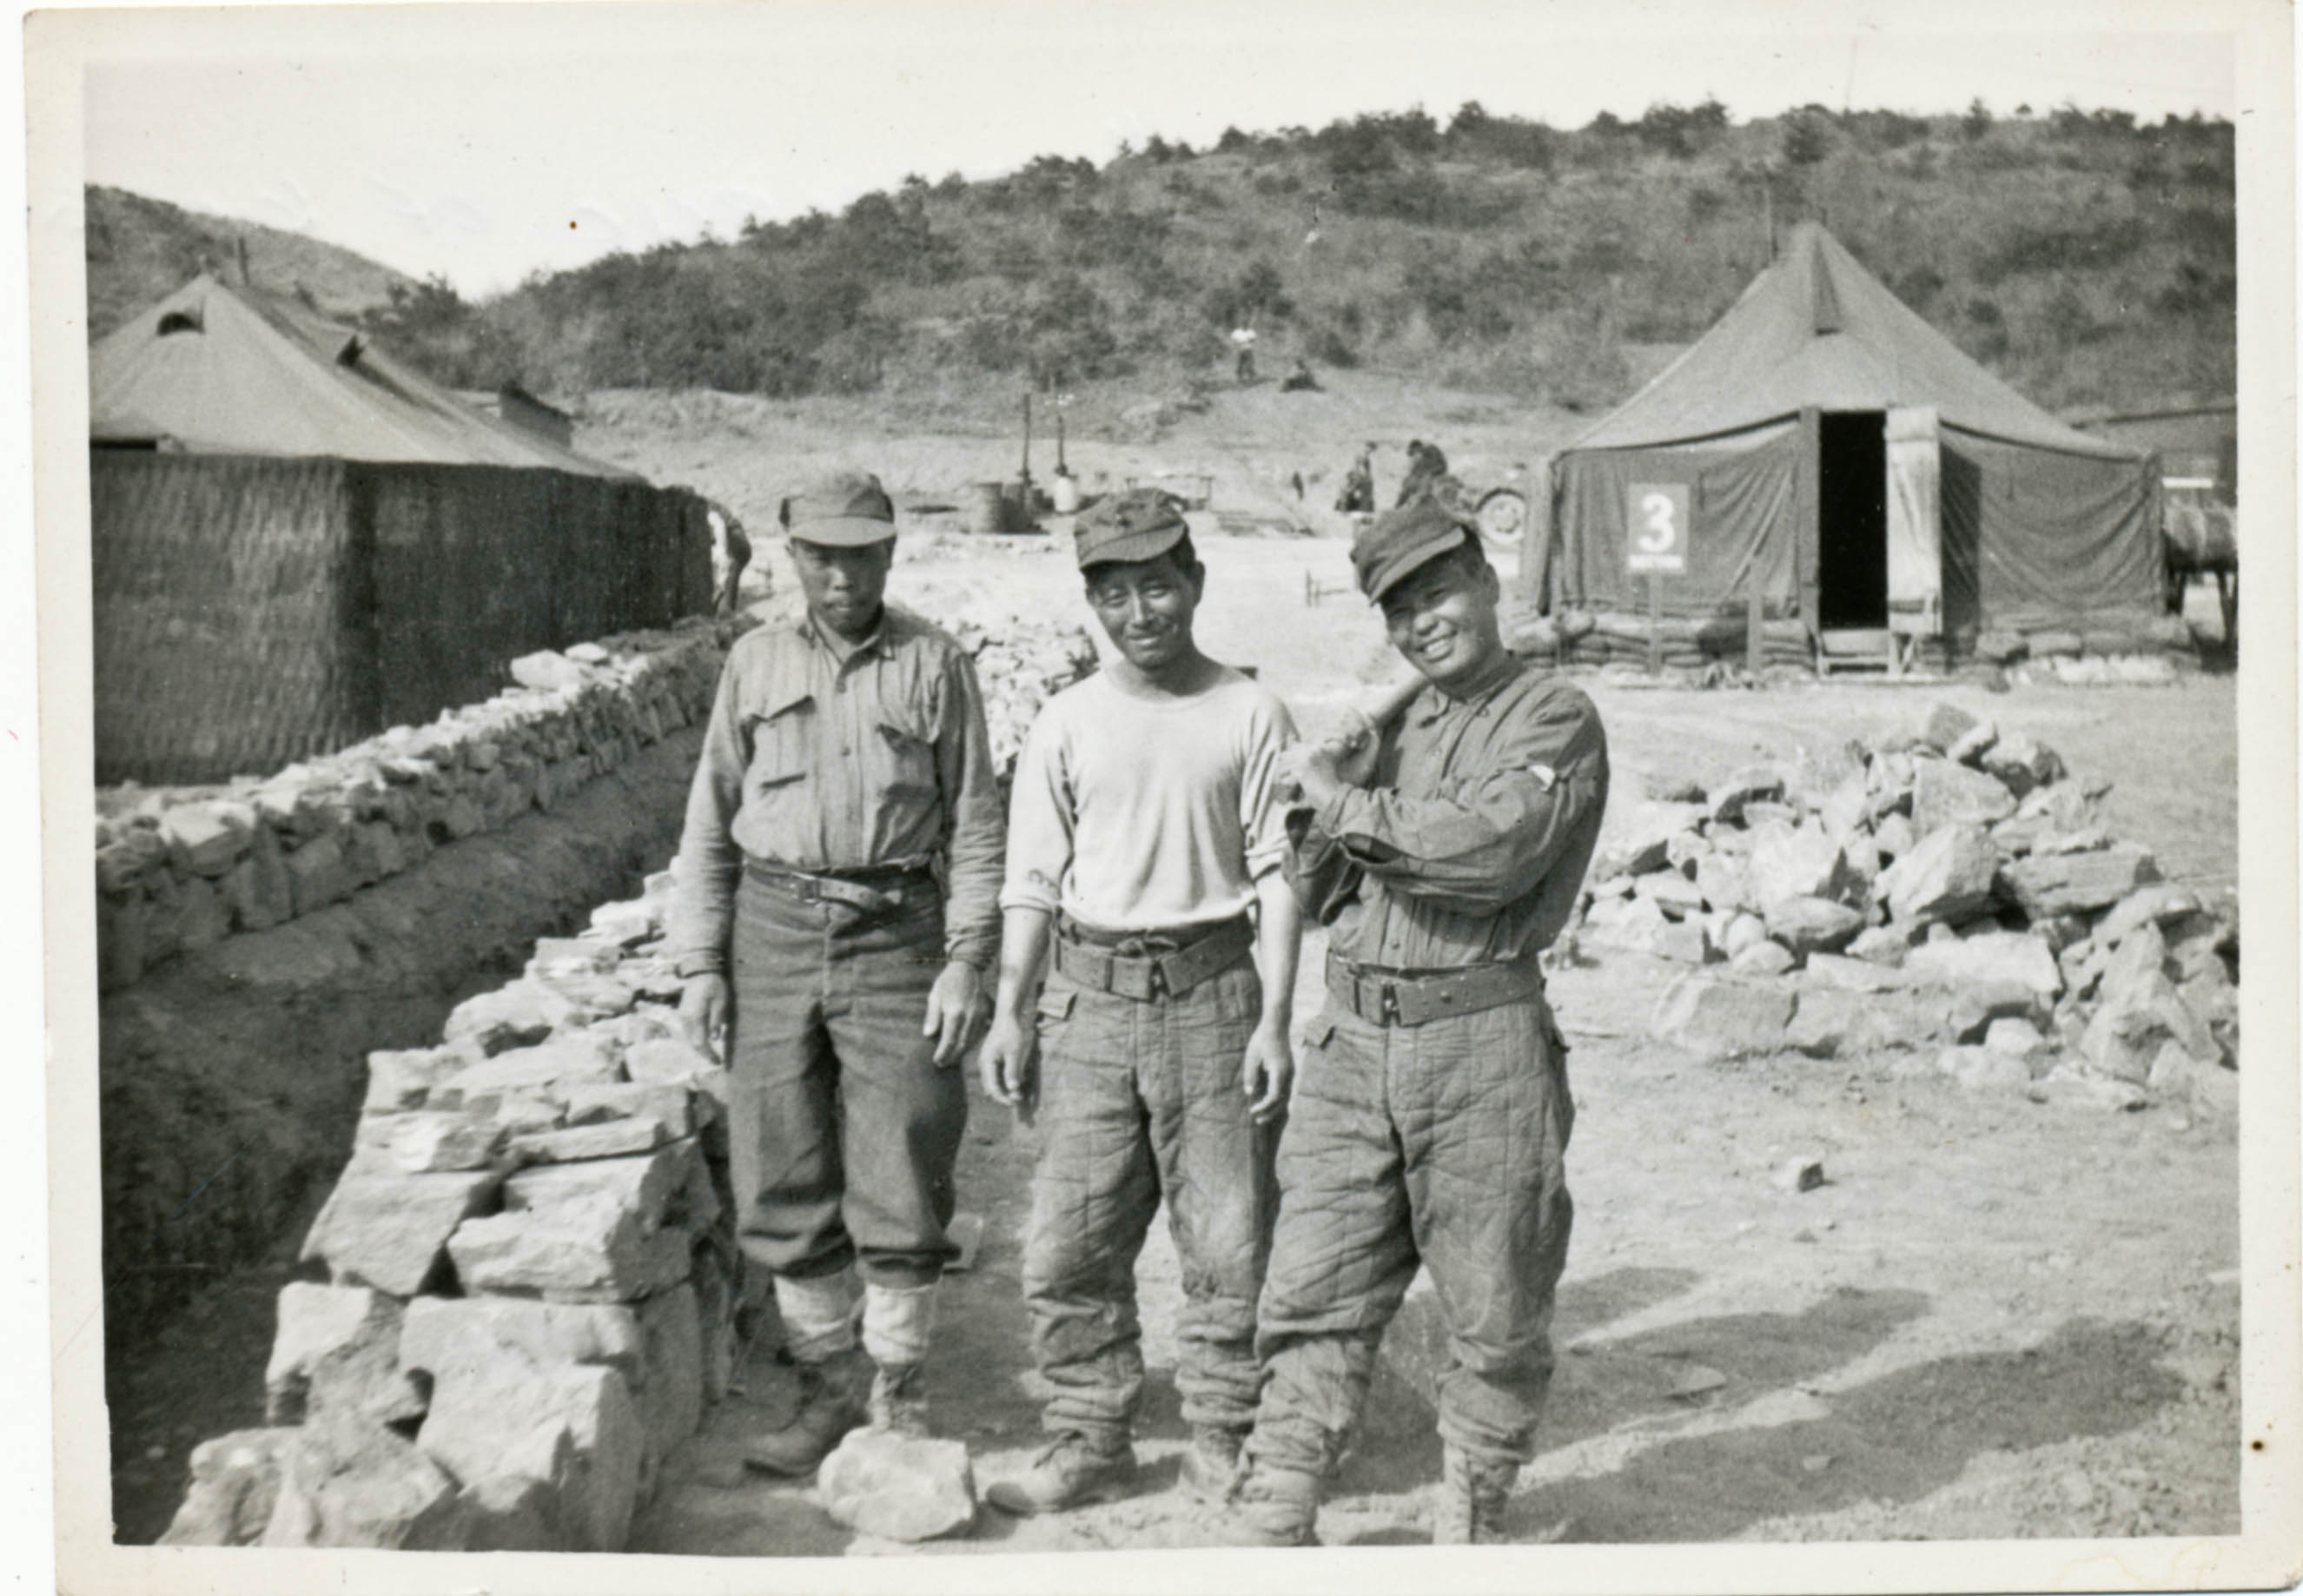 Members of the Korean Service Corps, August 1953.